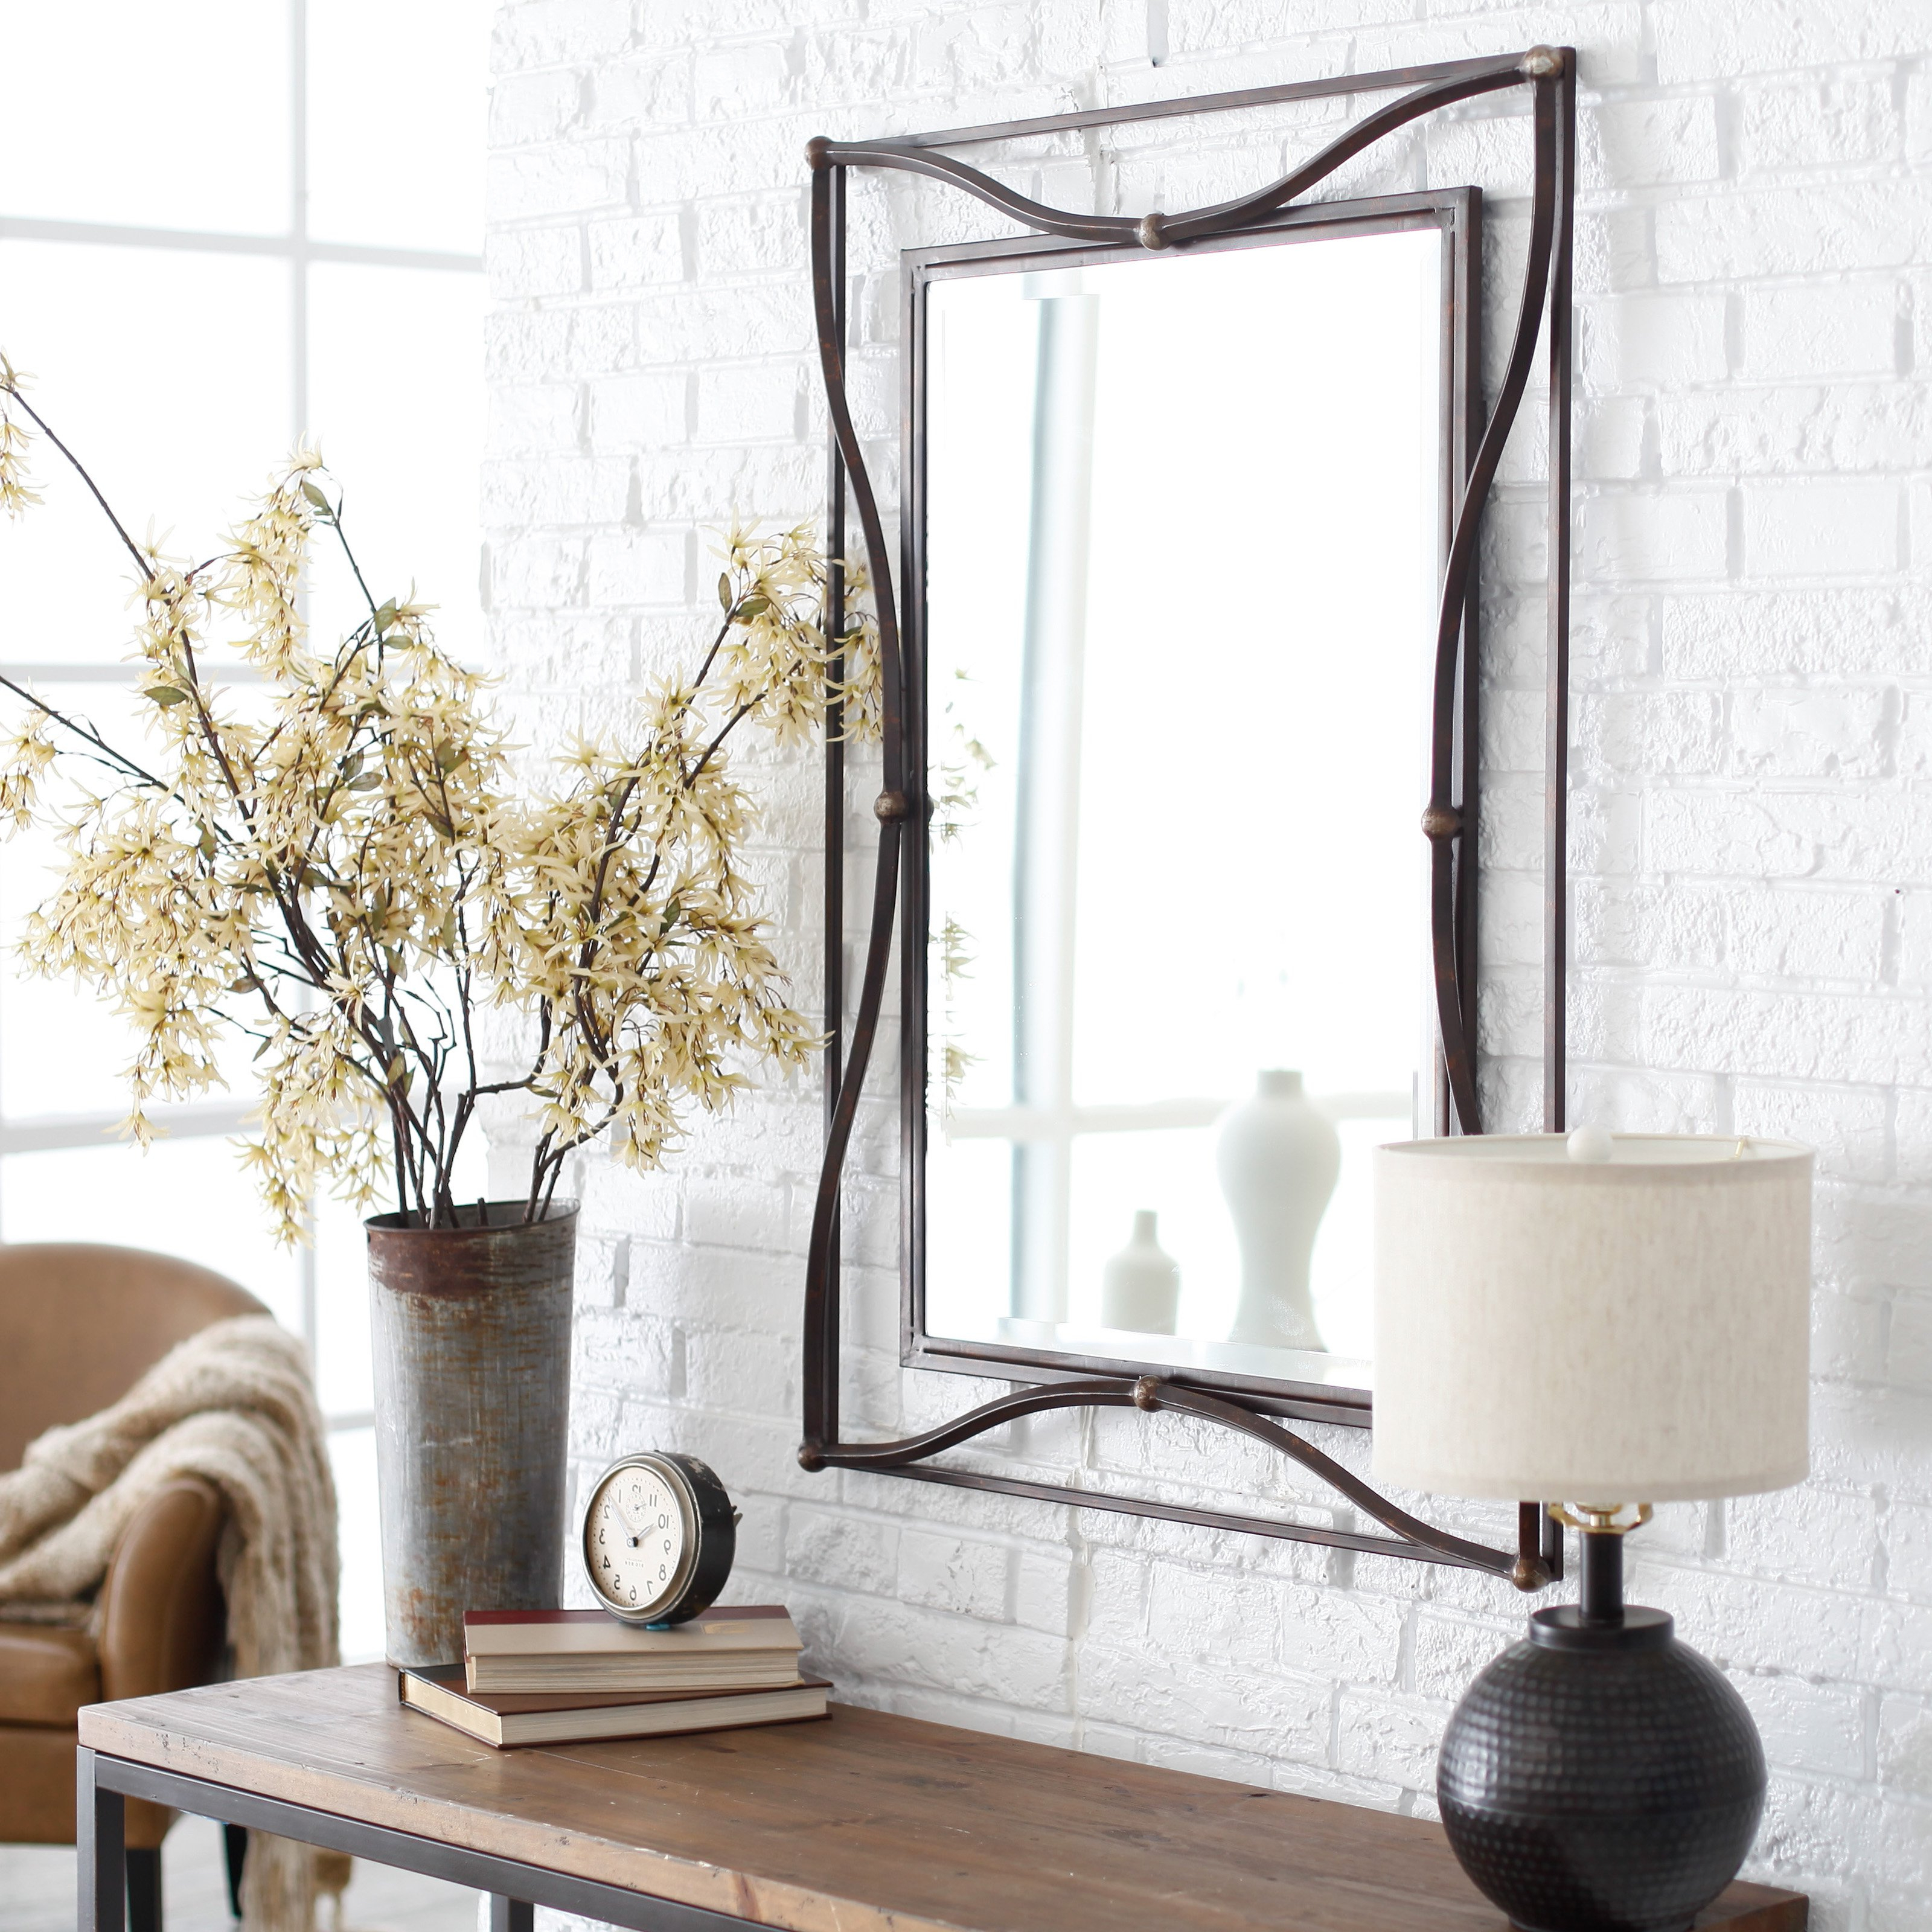 Current Wall Mirror Designs For Bedrooms For Ausergewohnlich Modern Wall Mirrors For Hallway Bedrooms (View 15 of 20)